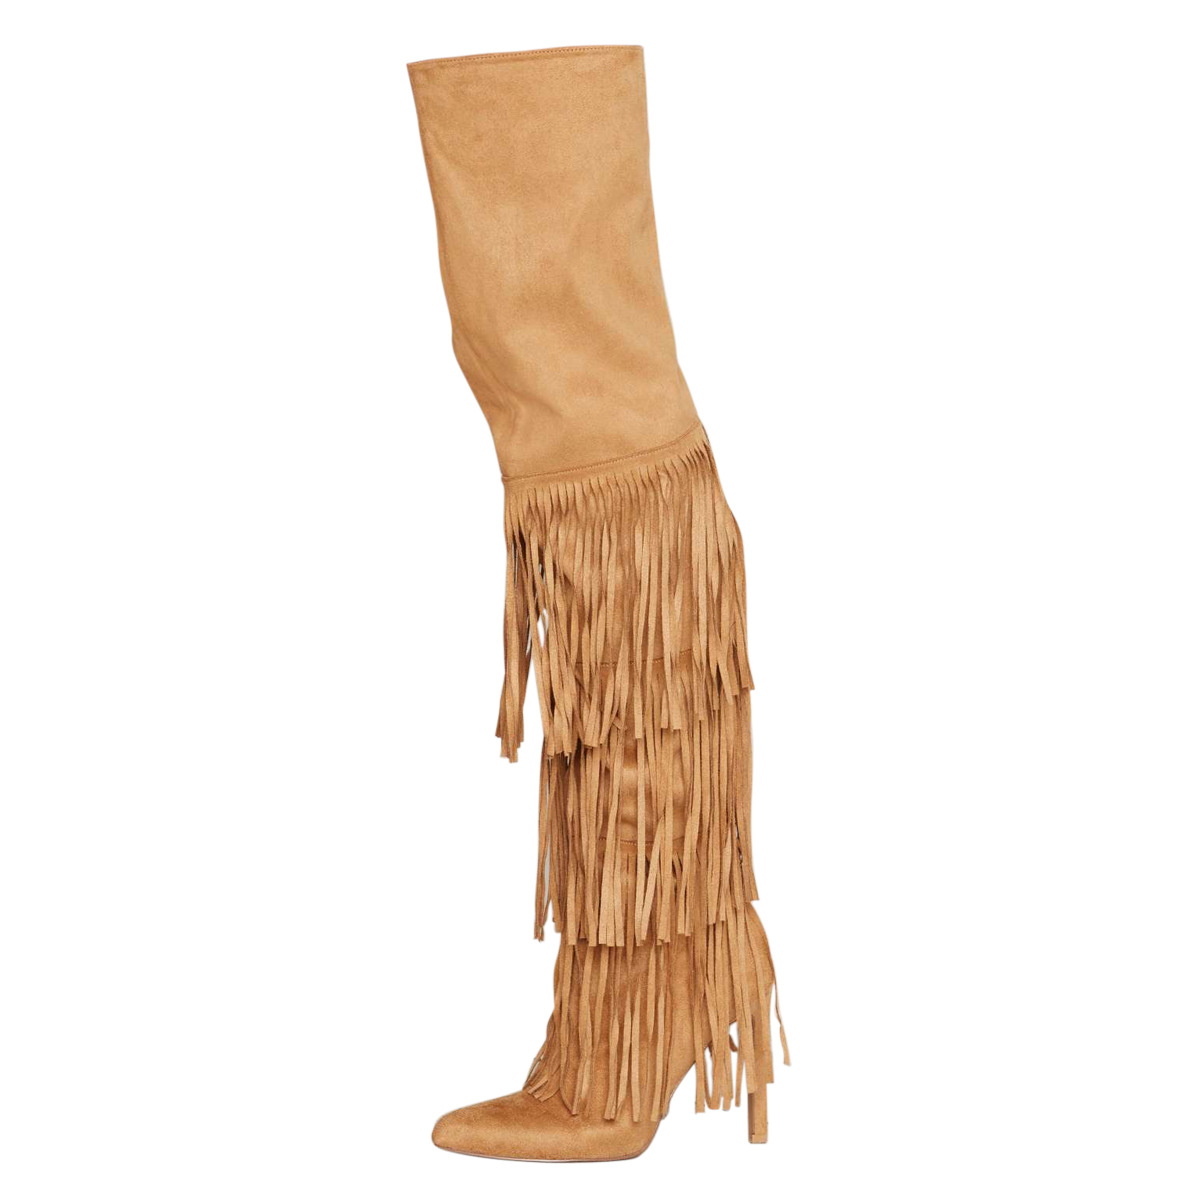 Women's Over-the-knee Boots Brown Knee Length Tassel Super High Heeled Thin Heels Thigh Boot Shoes Woman Femmes Chaussures Botas